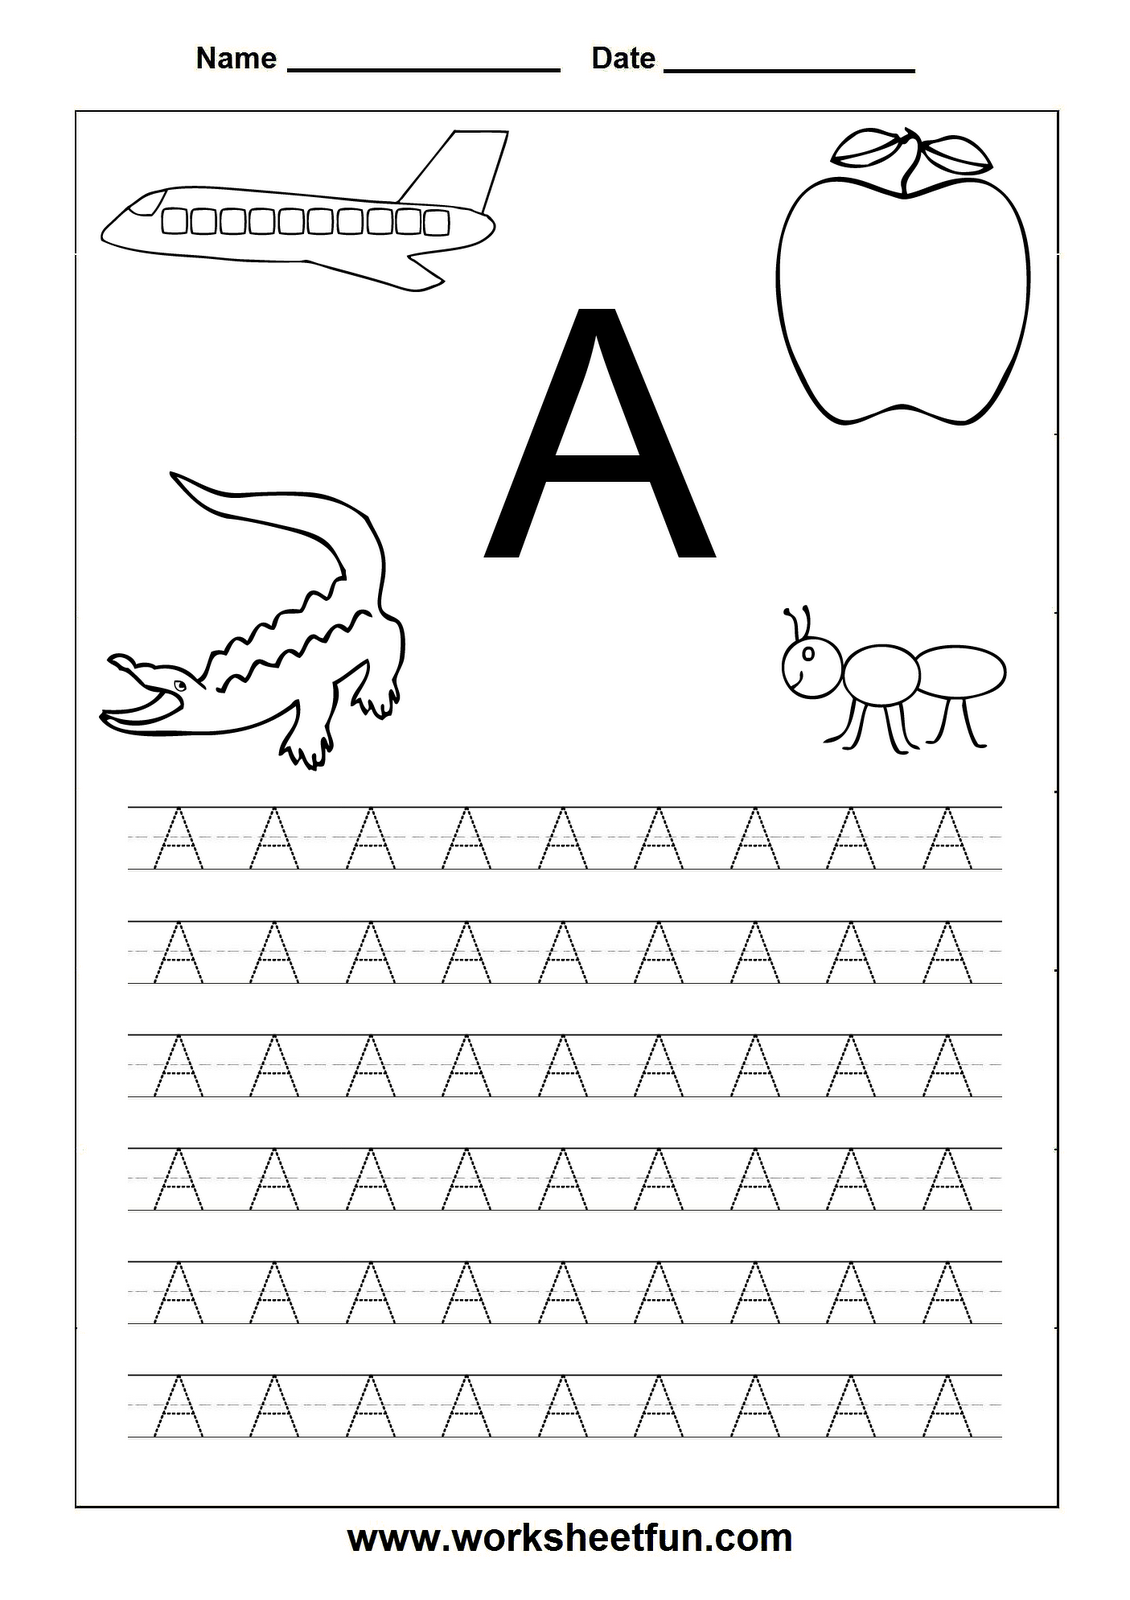 Worksheets Free Alphabet Worksheets For Preschoolers letter worksheets for kindergarten printable letters pinterest tracing and more free preschoolers